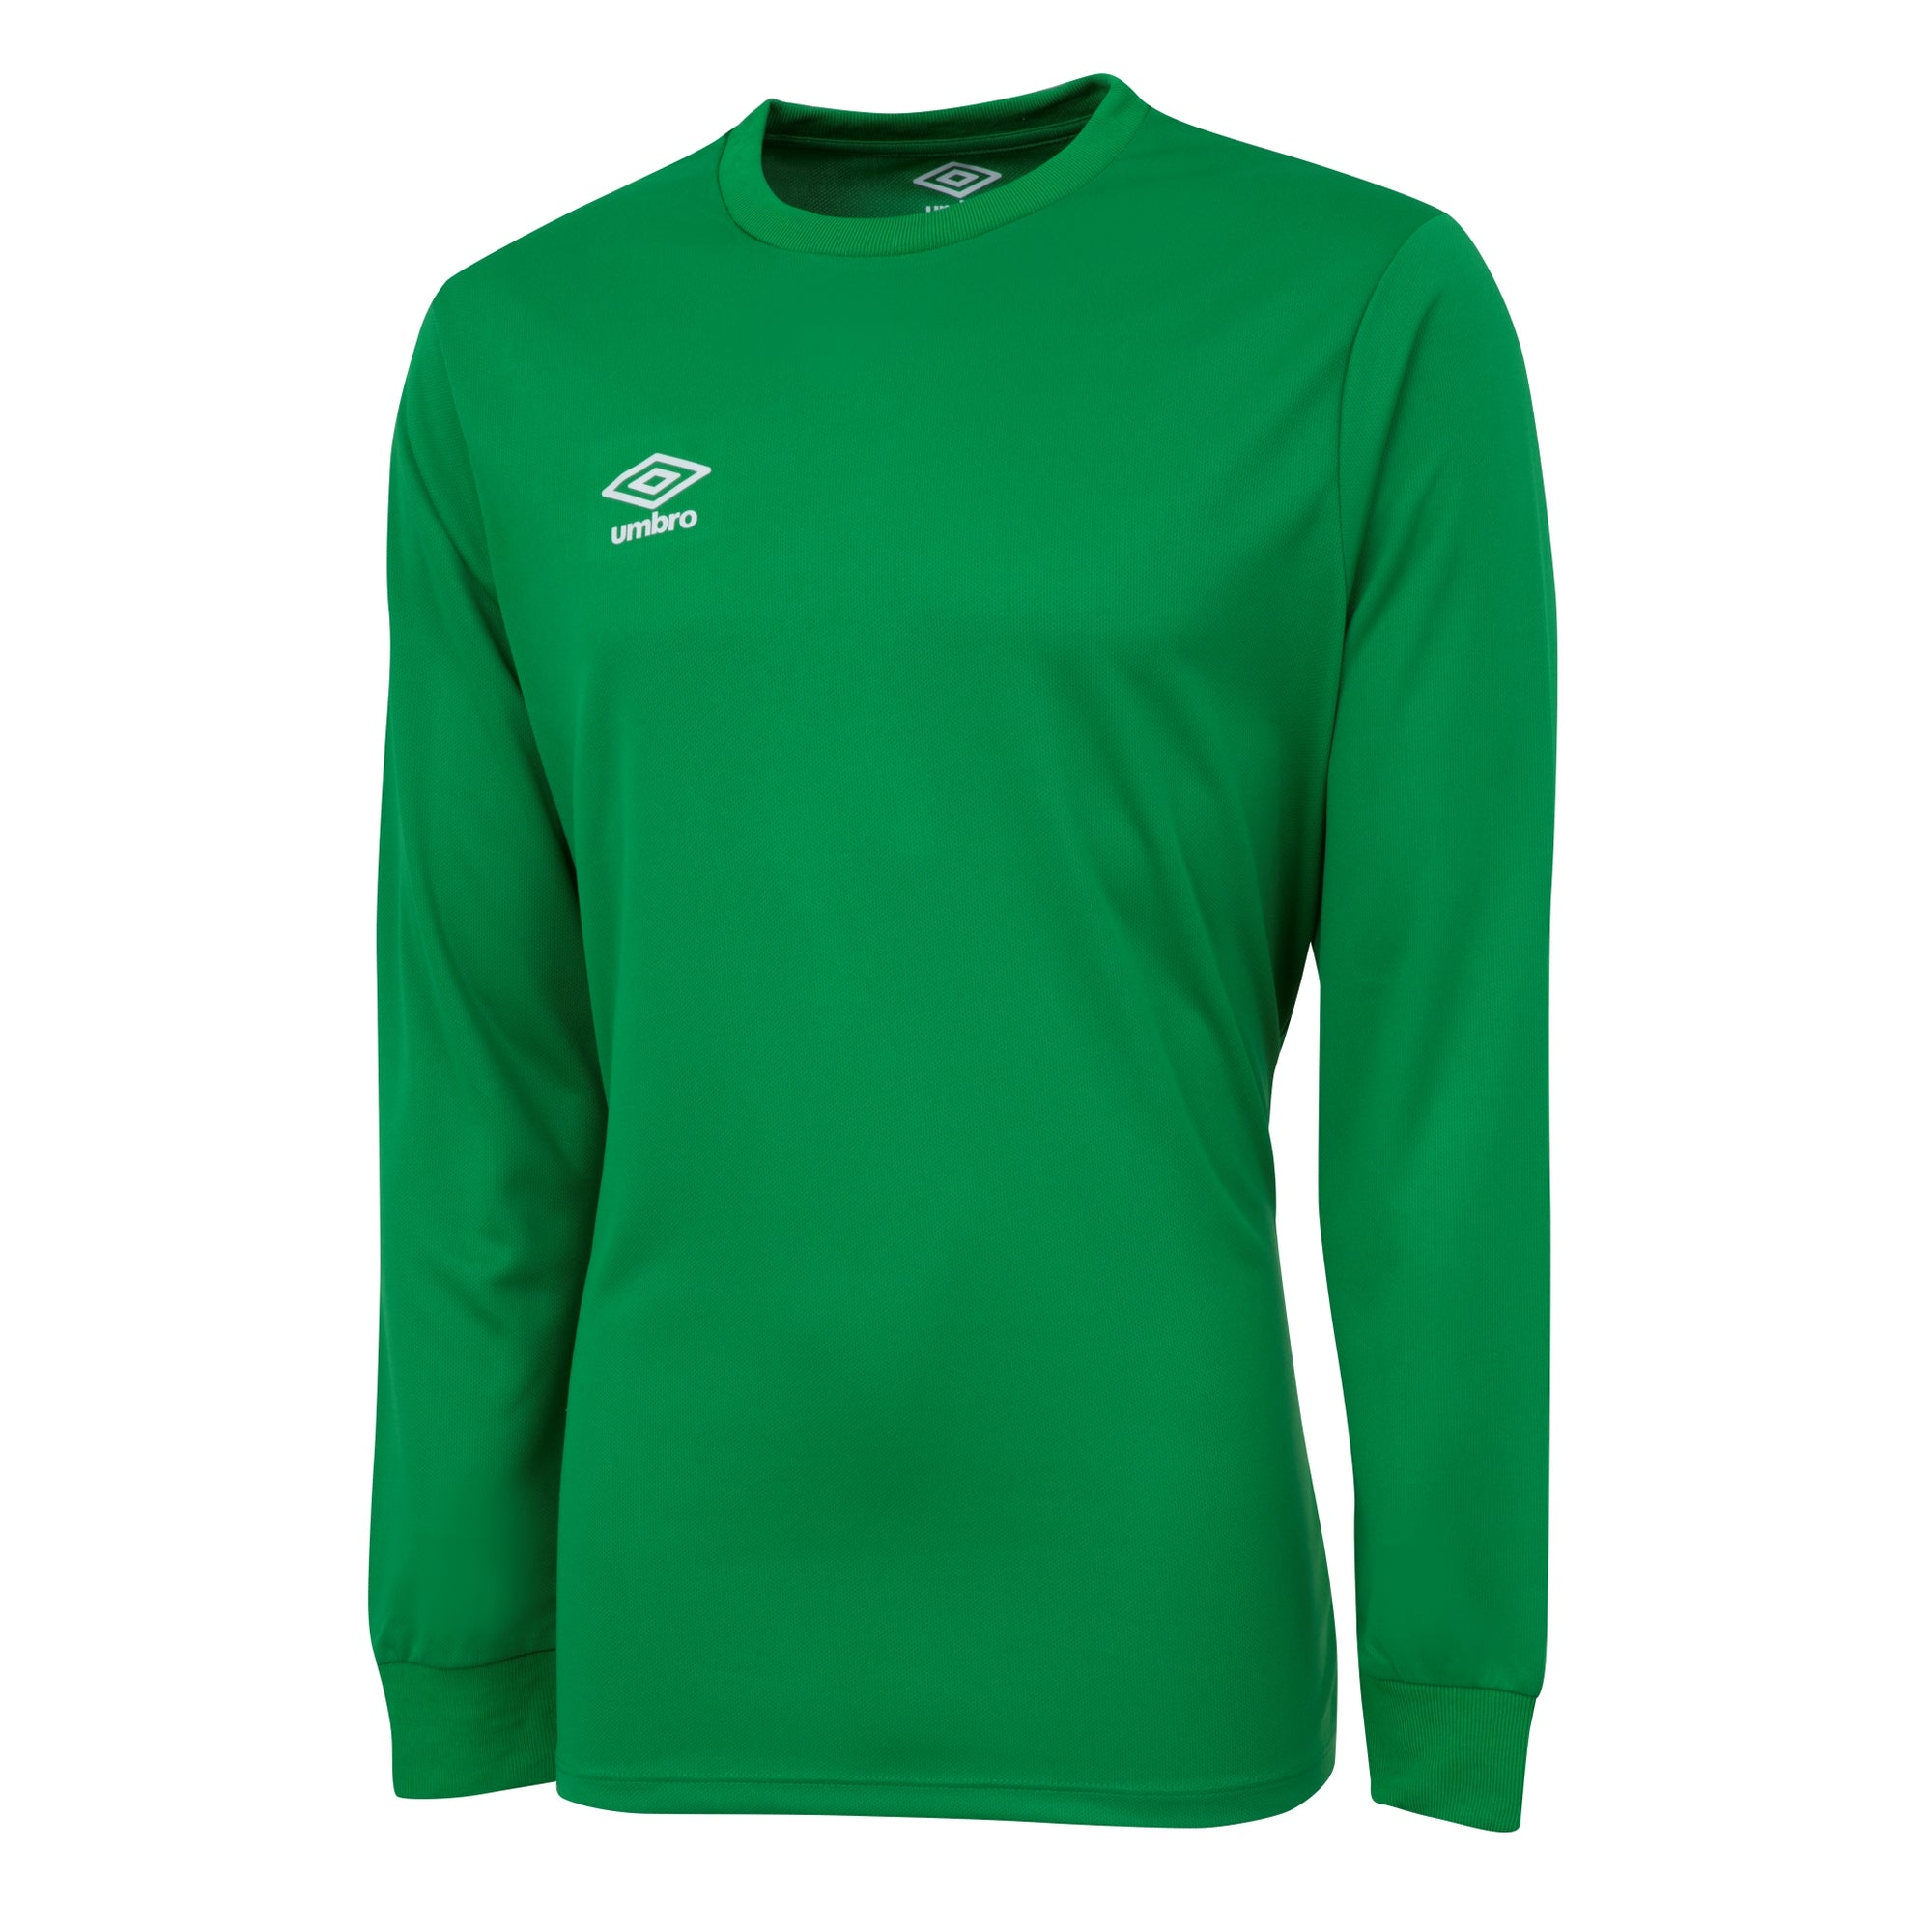 Umbro long sleeve club jersey in emerald with white printed Umbro logo